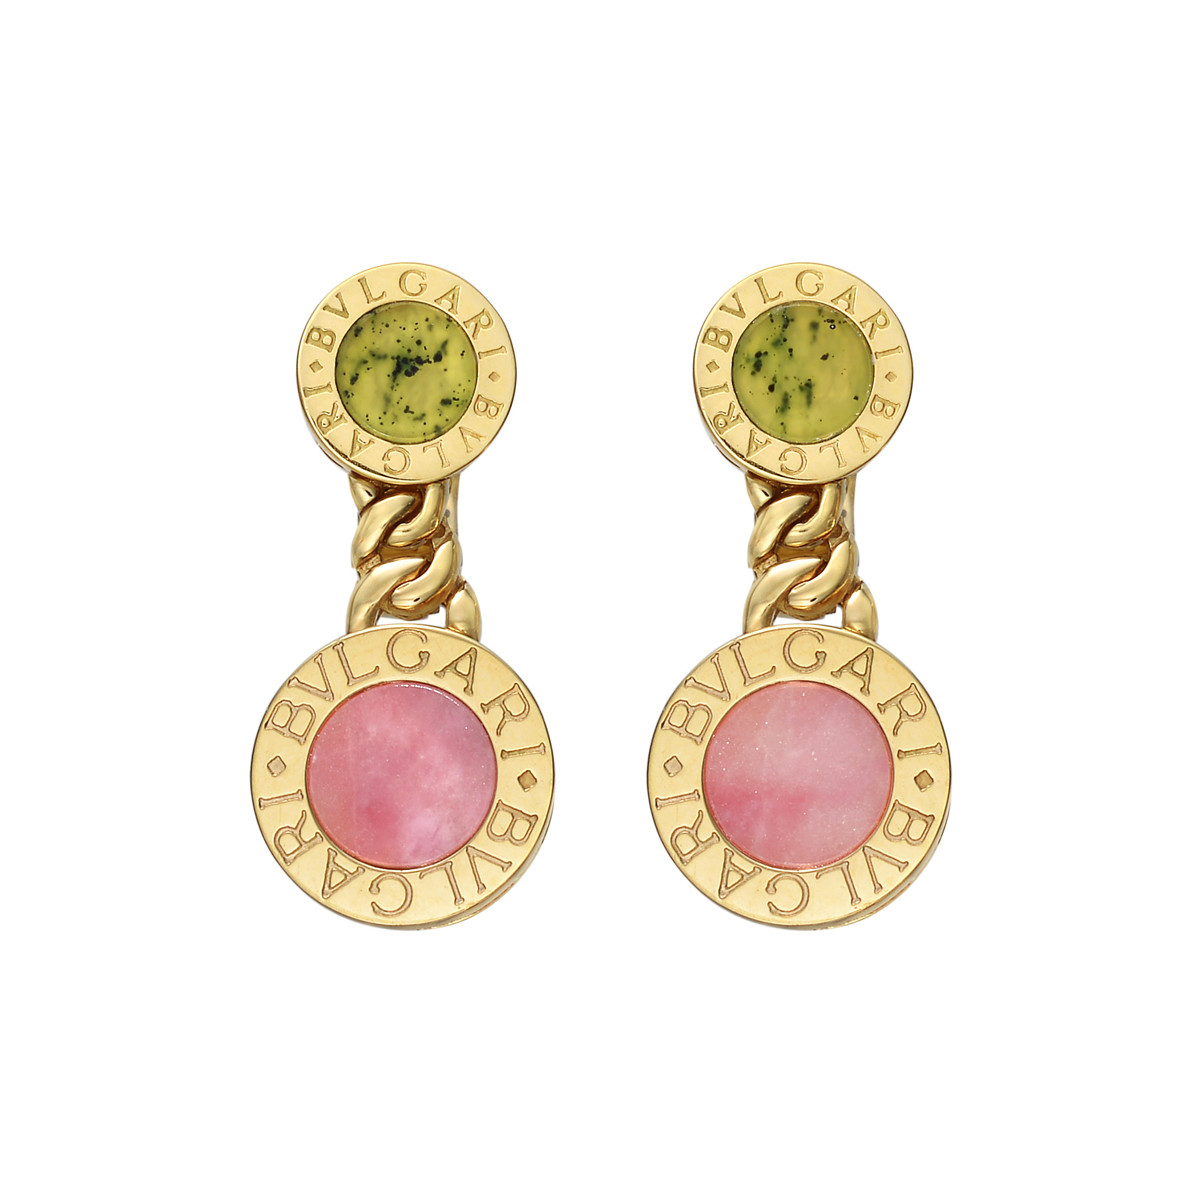 18k Yellow Gold, Rhodochrosite & Jade Drop Earrings